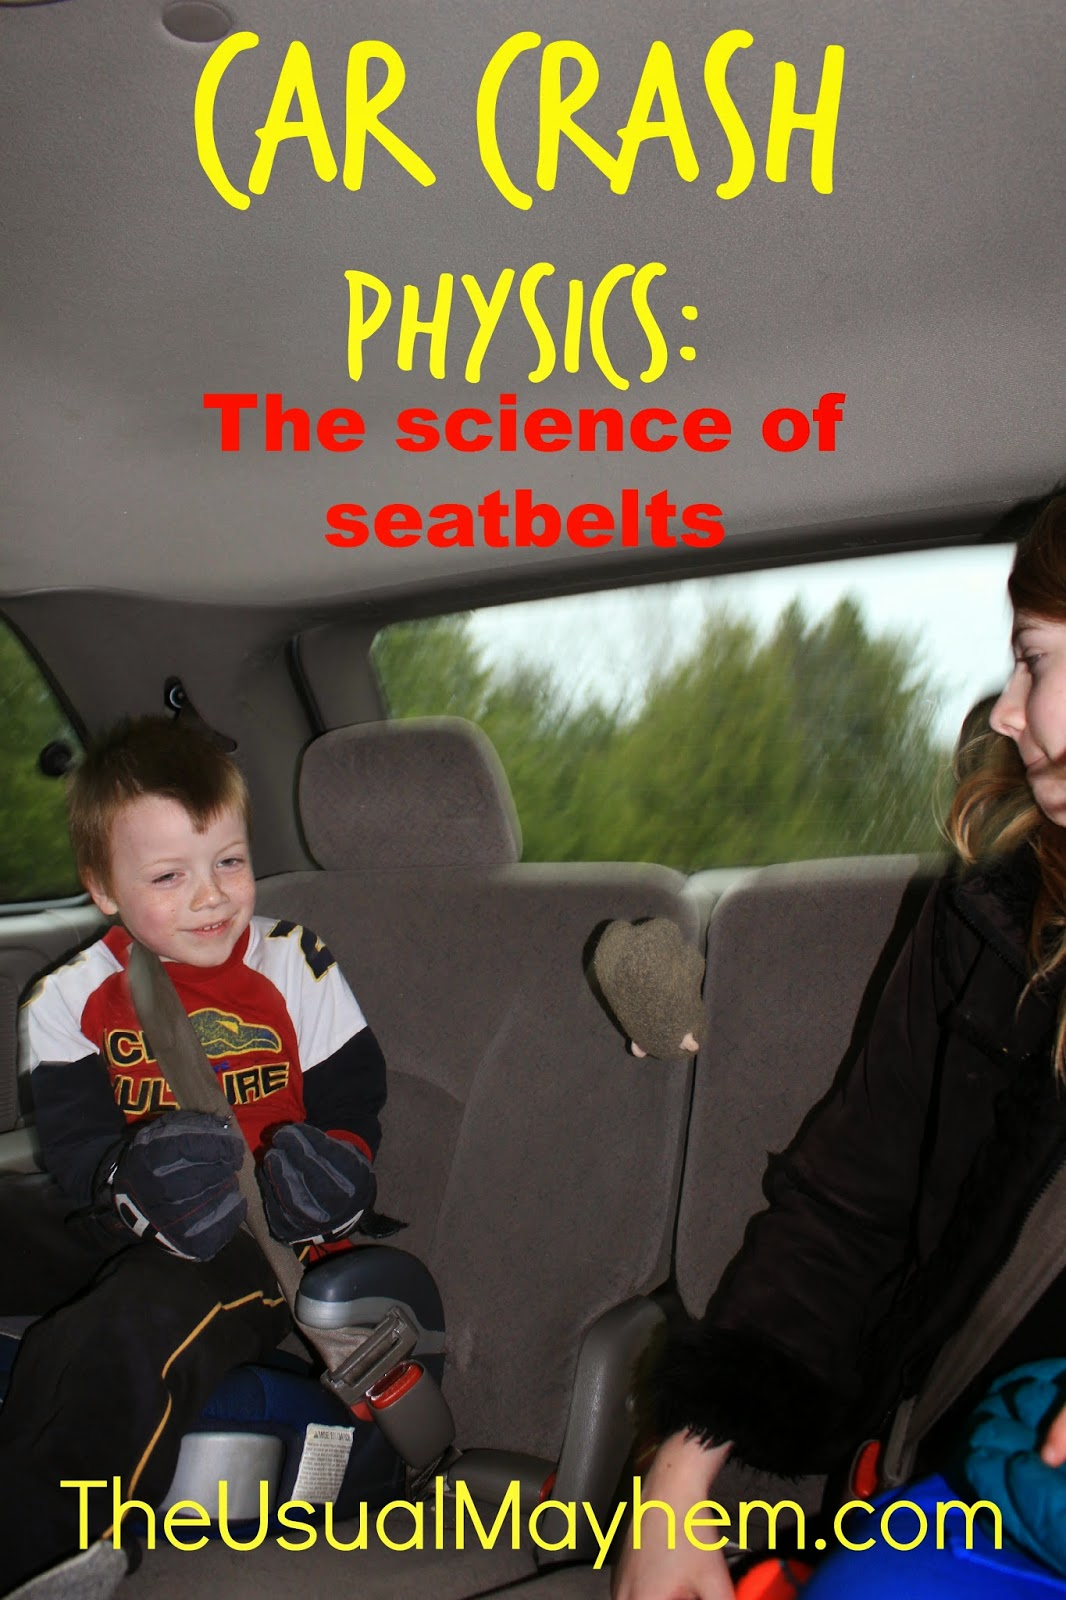 The Science of Seatbelts: Car Crash Physics